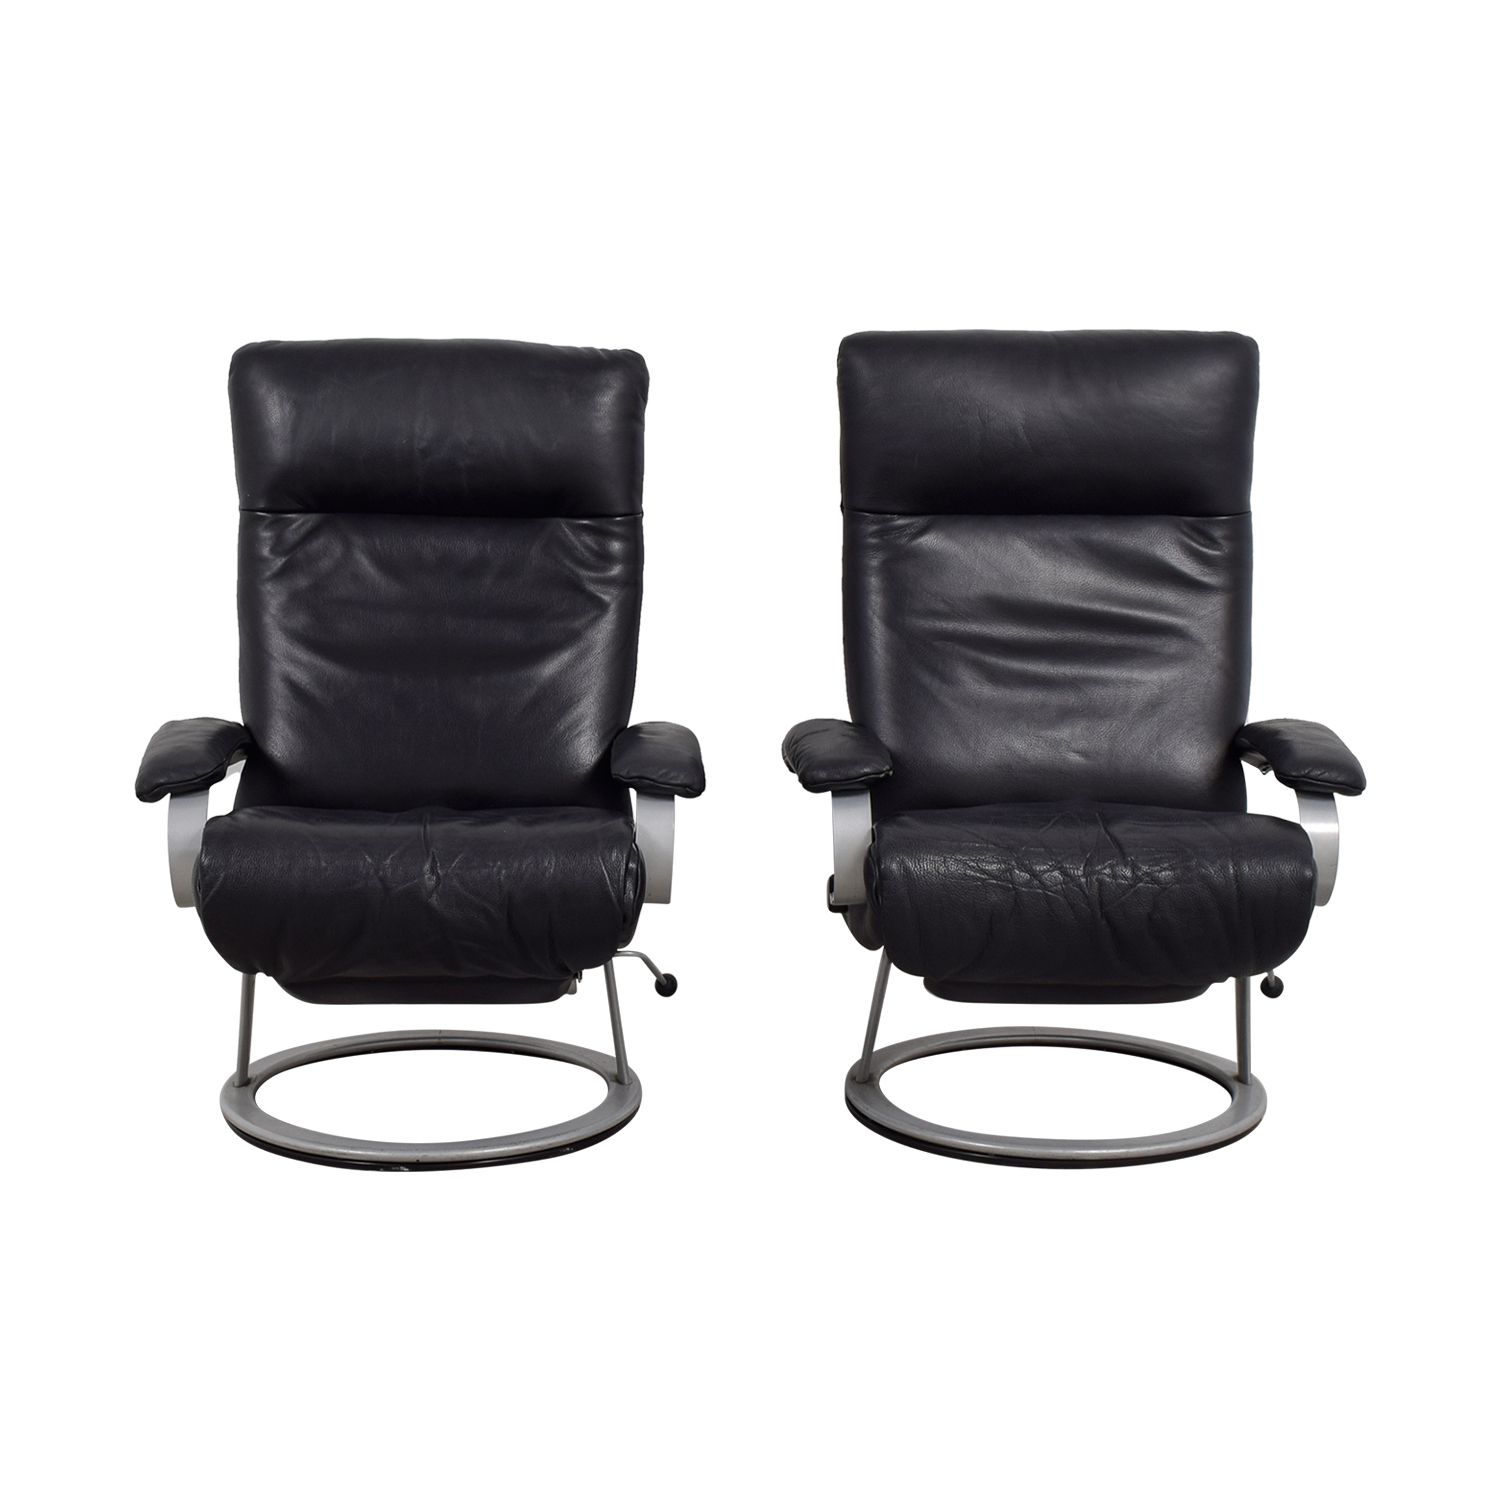 Jenson Lewis Jenson Lewis Black Leather Recliners price